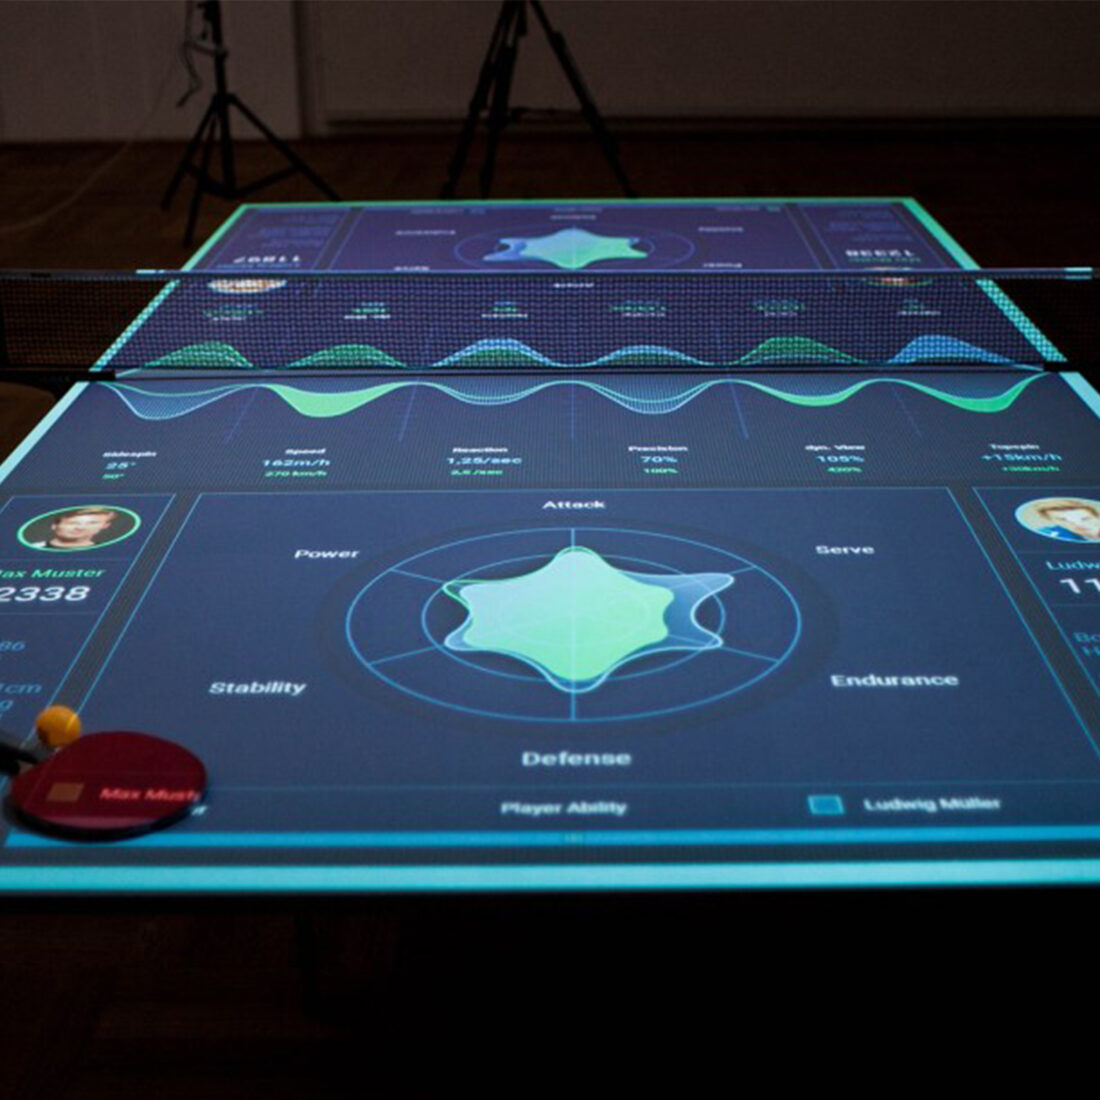 Interactive table tennis